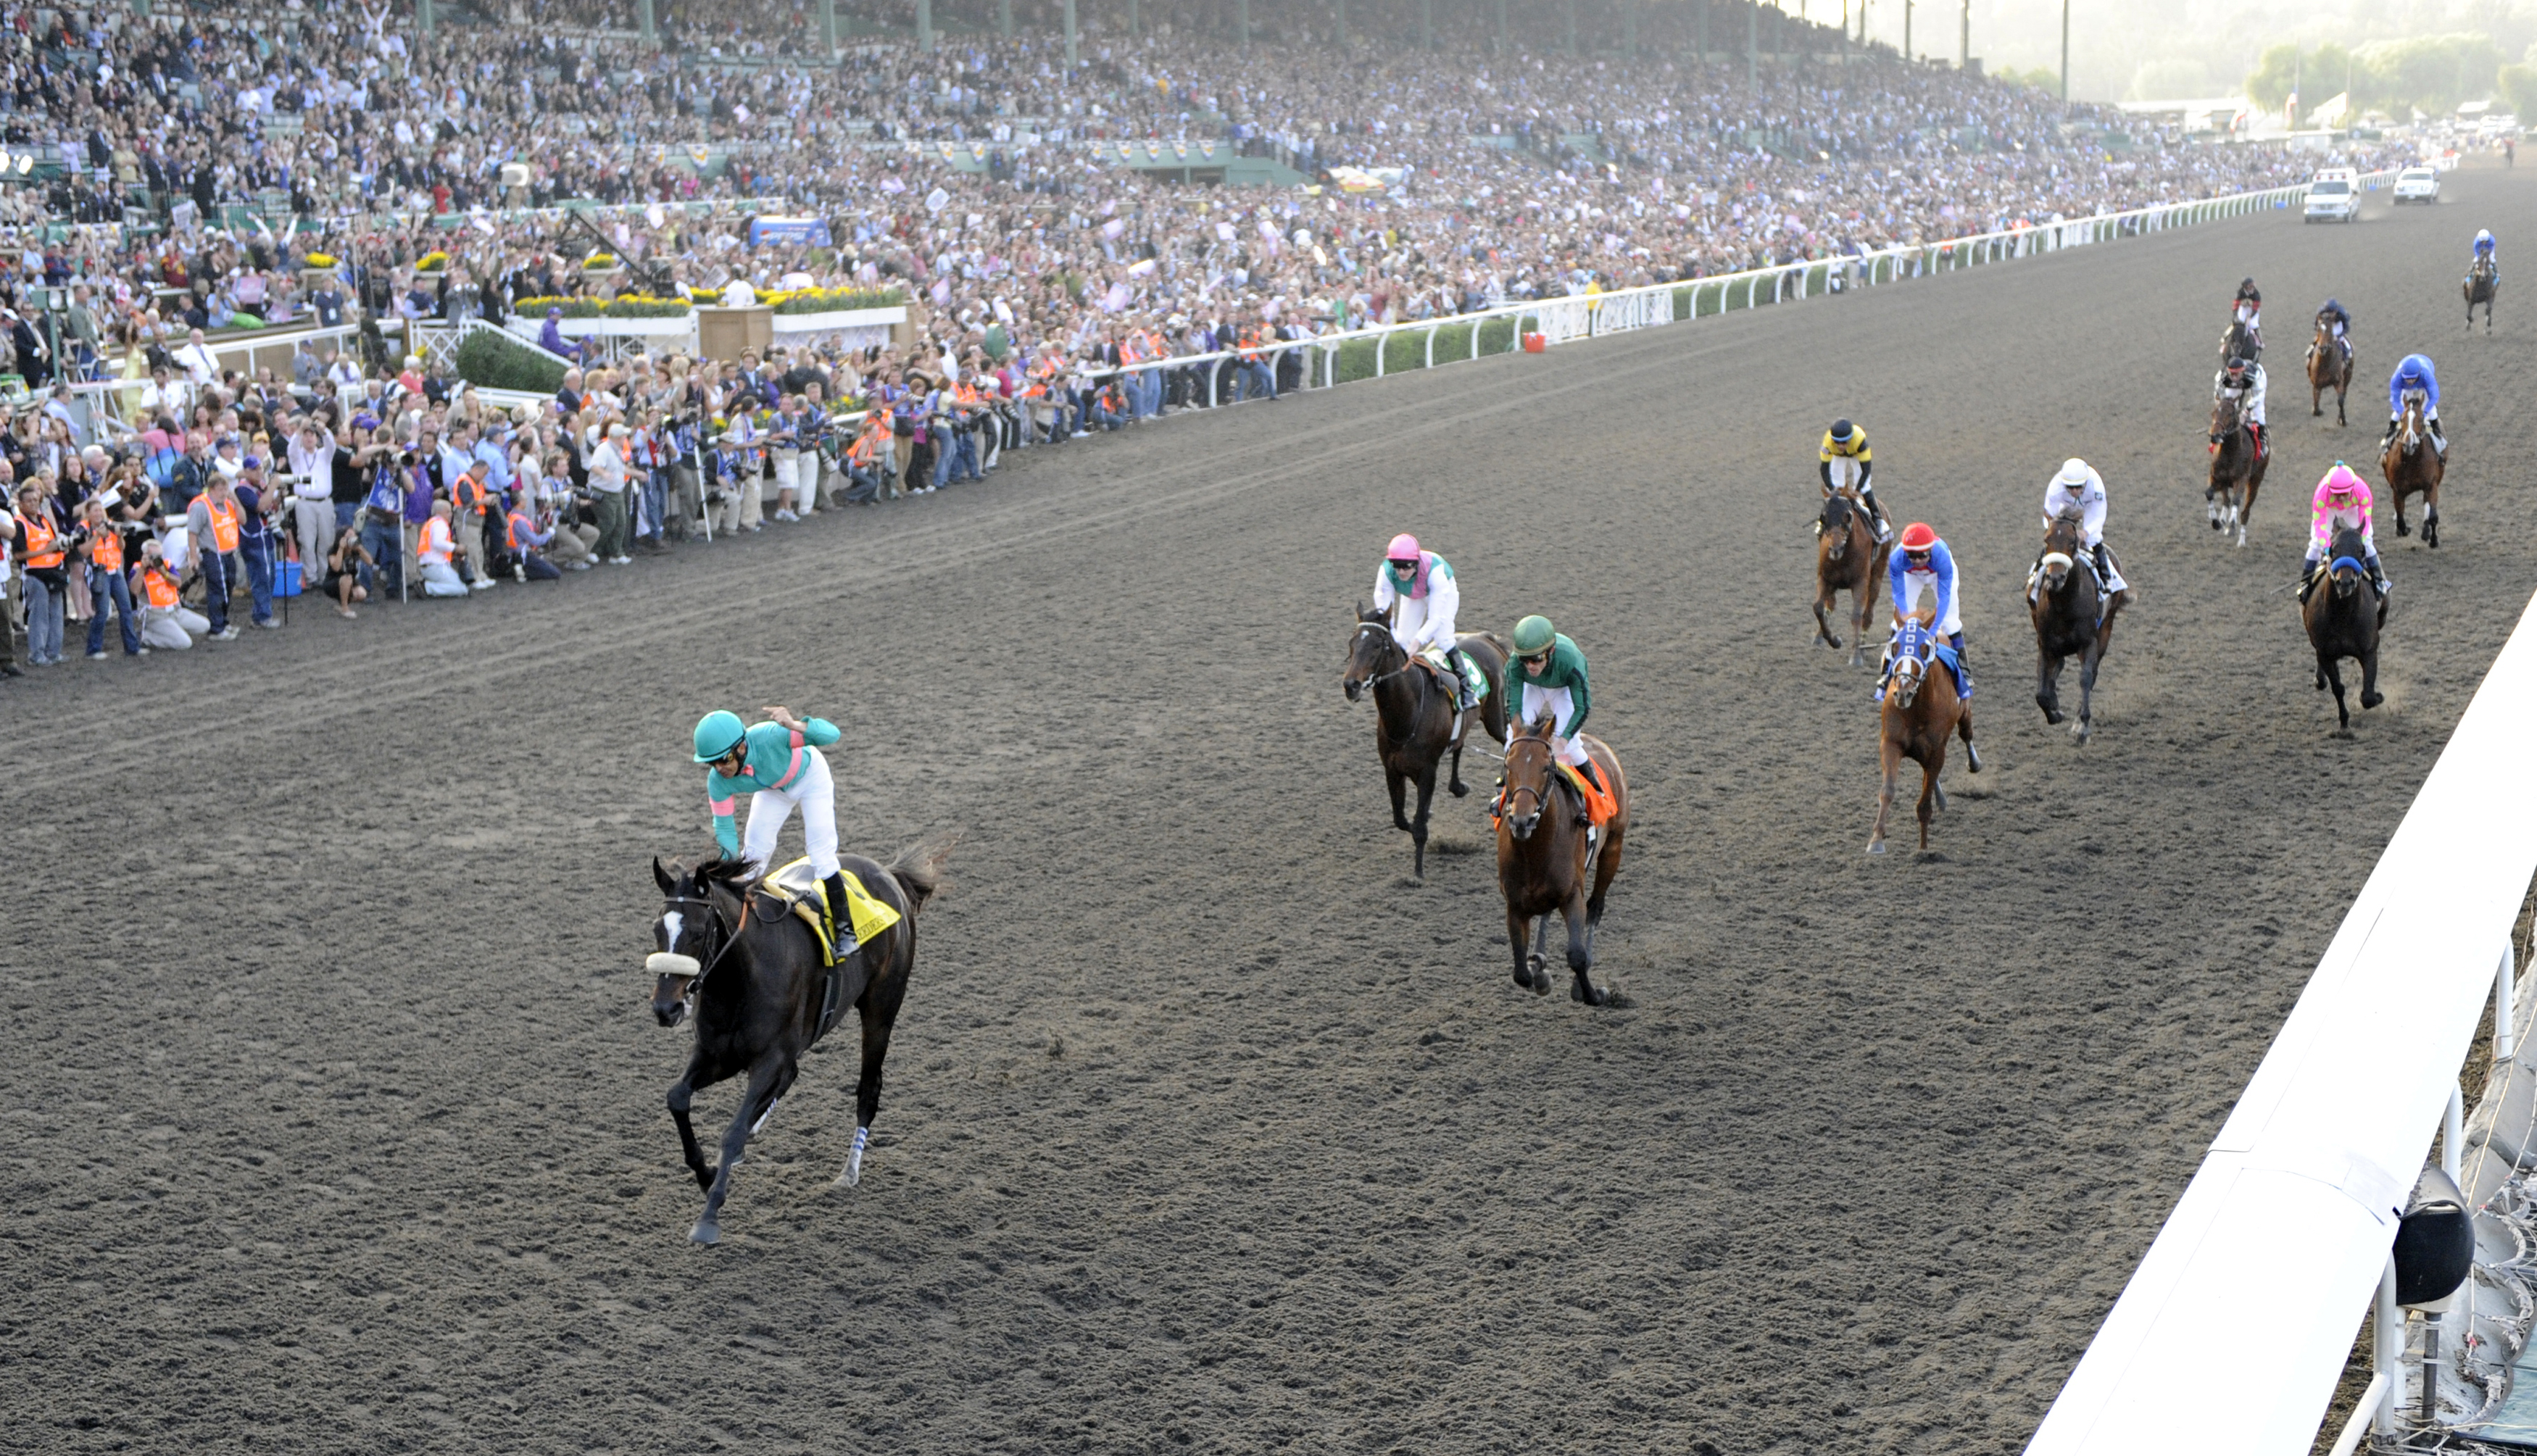 The view down the stretch following the finish of the 2009 Breeders' Cup Classic, won by Zenyatta with Mike Smith up (Skip Dickstein)